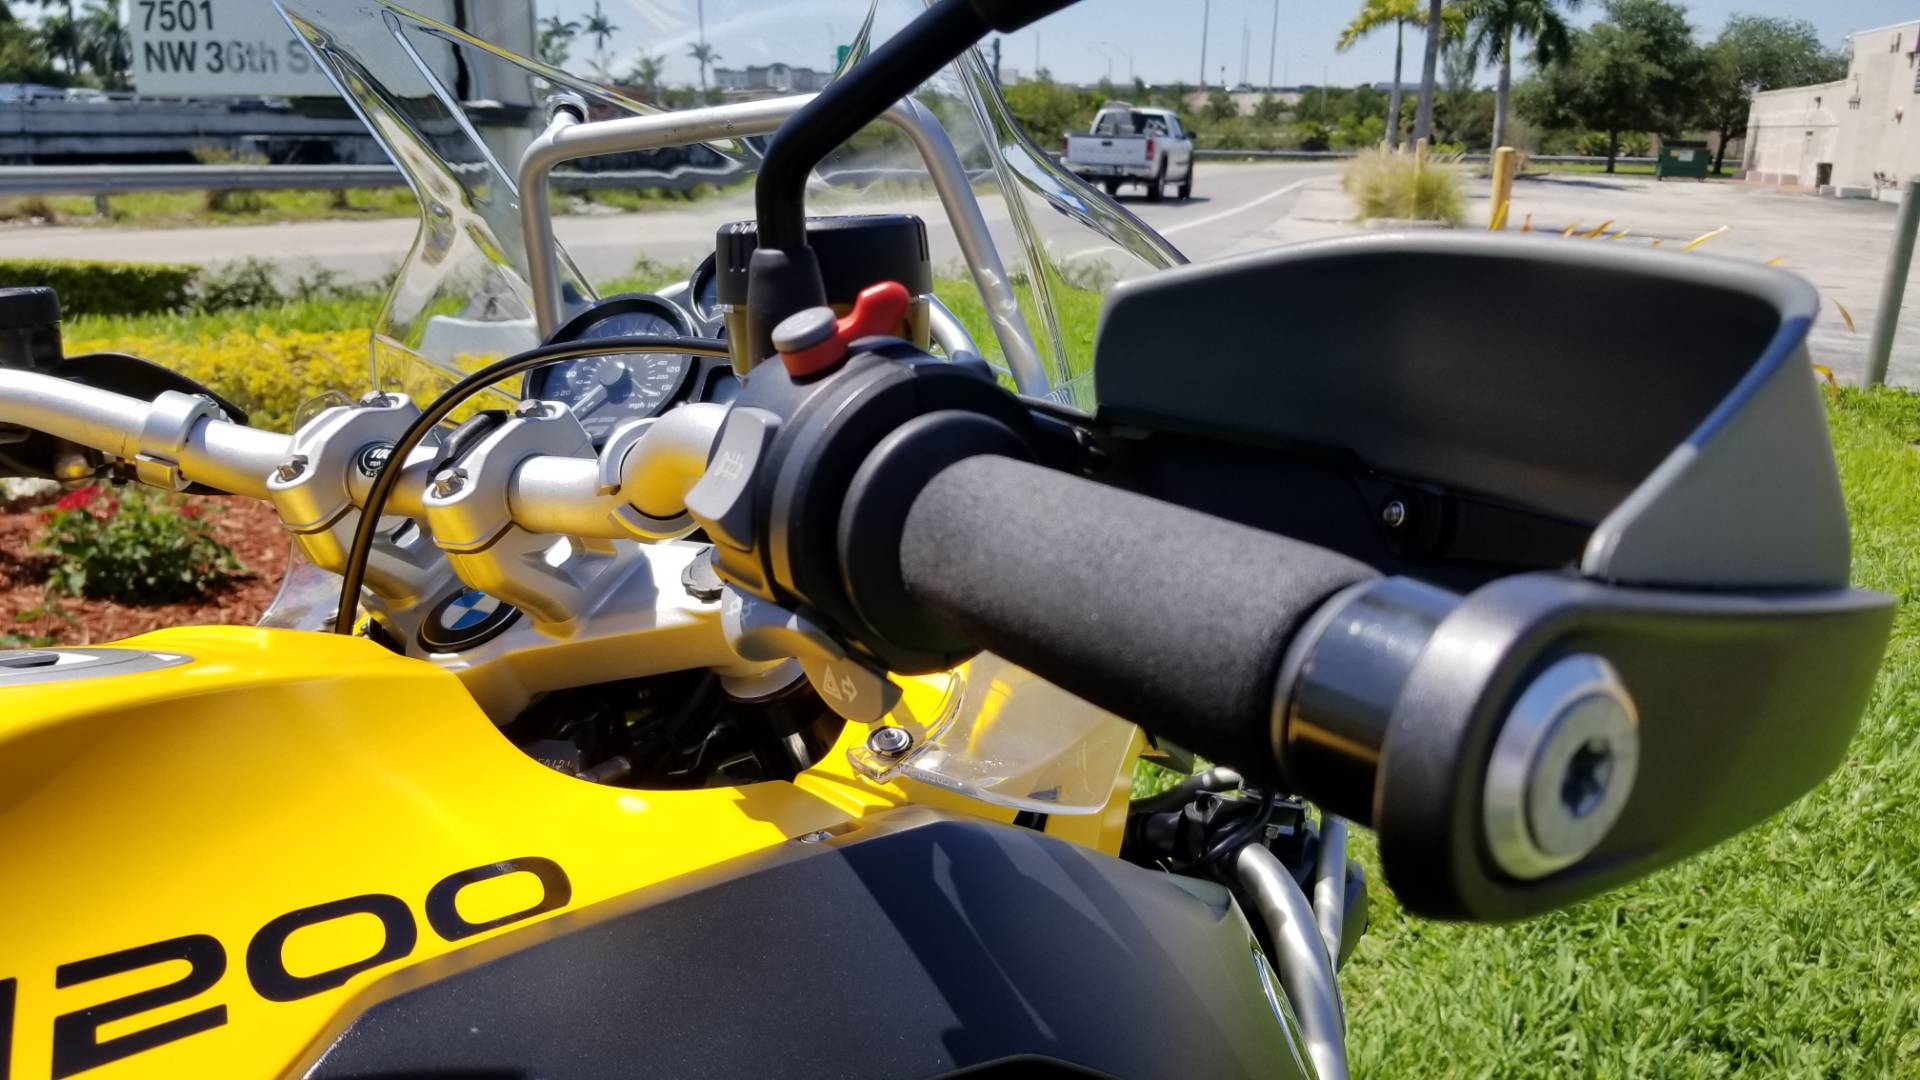 Used 2011 BMW R 1200 GSA For Sale, Pre owned BMW R 1200GSA For Sale, BMW Motorcycle R1200GSA, BMW Motorcycles of Miami, Motorcycles of Miami, Motorcycles Miami - Photo 21